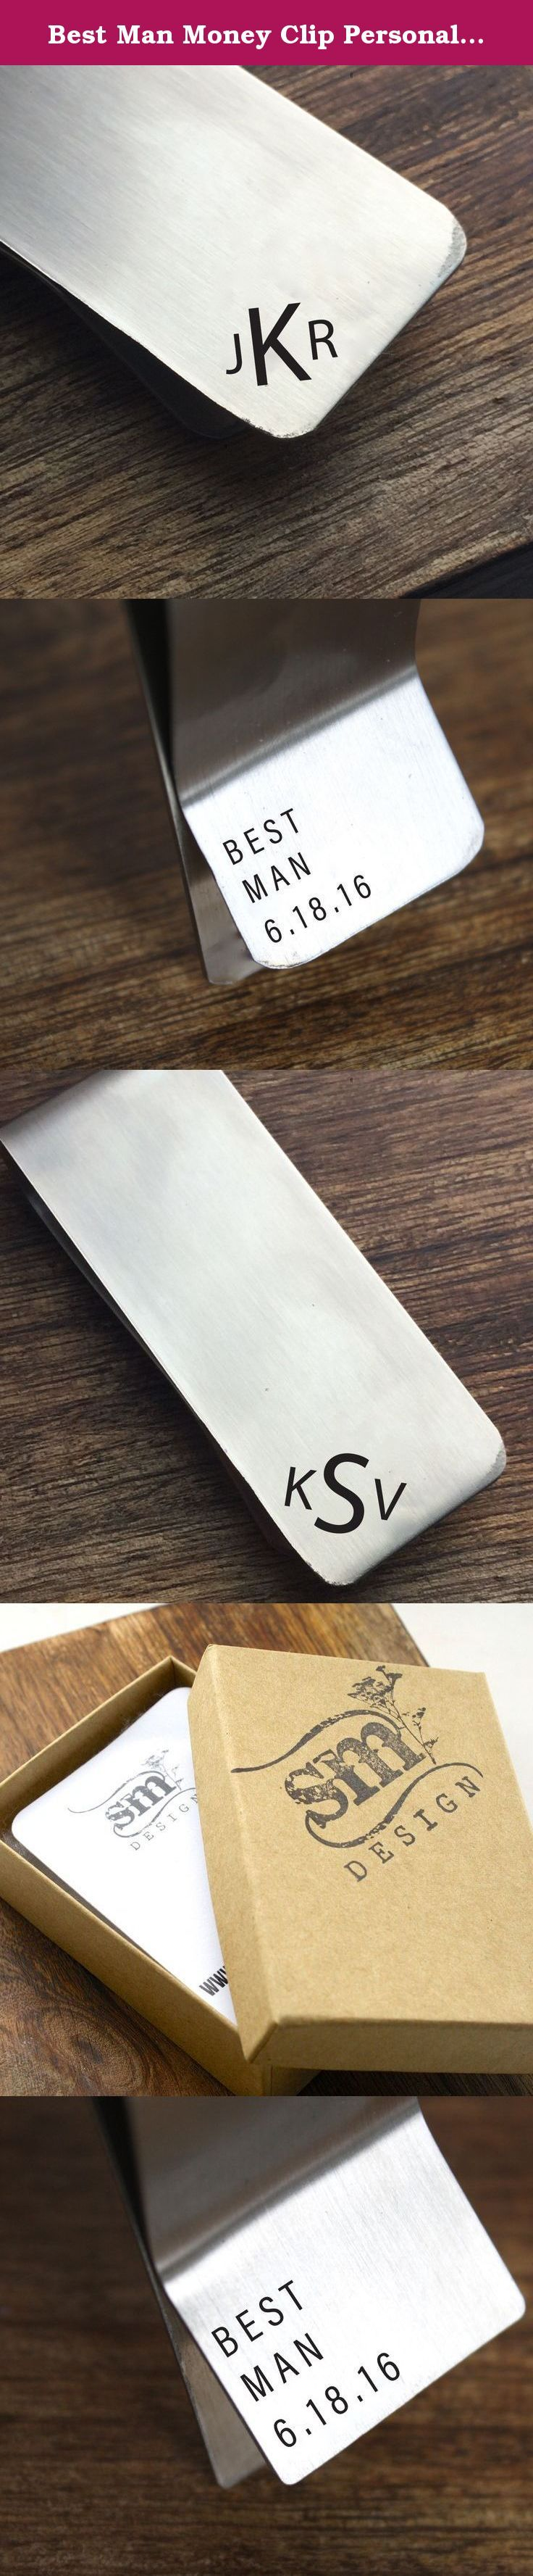 """Best Man Money Clip Personalized Money Clip Money Clip Stainless Steel Money Men's Gift For Him Best Man Gift for Best Man. The perfect gift for your Best Man!! This stainless steel money clip has a personalized monogram on the front and """"Best Man"""" and a personalized date on the back."""